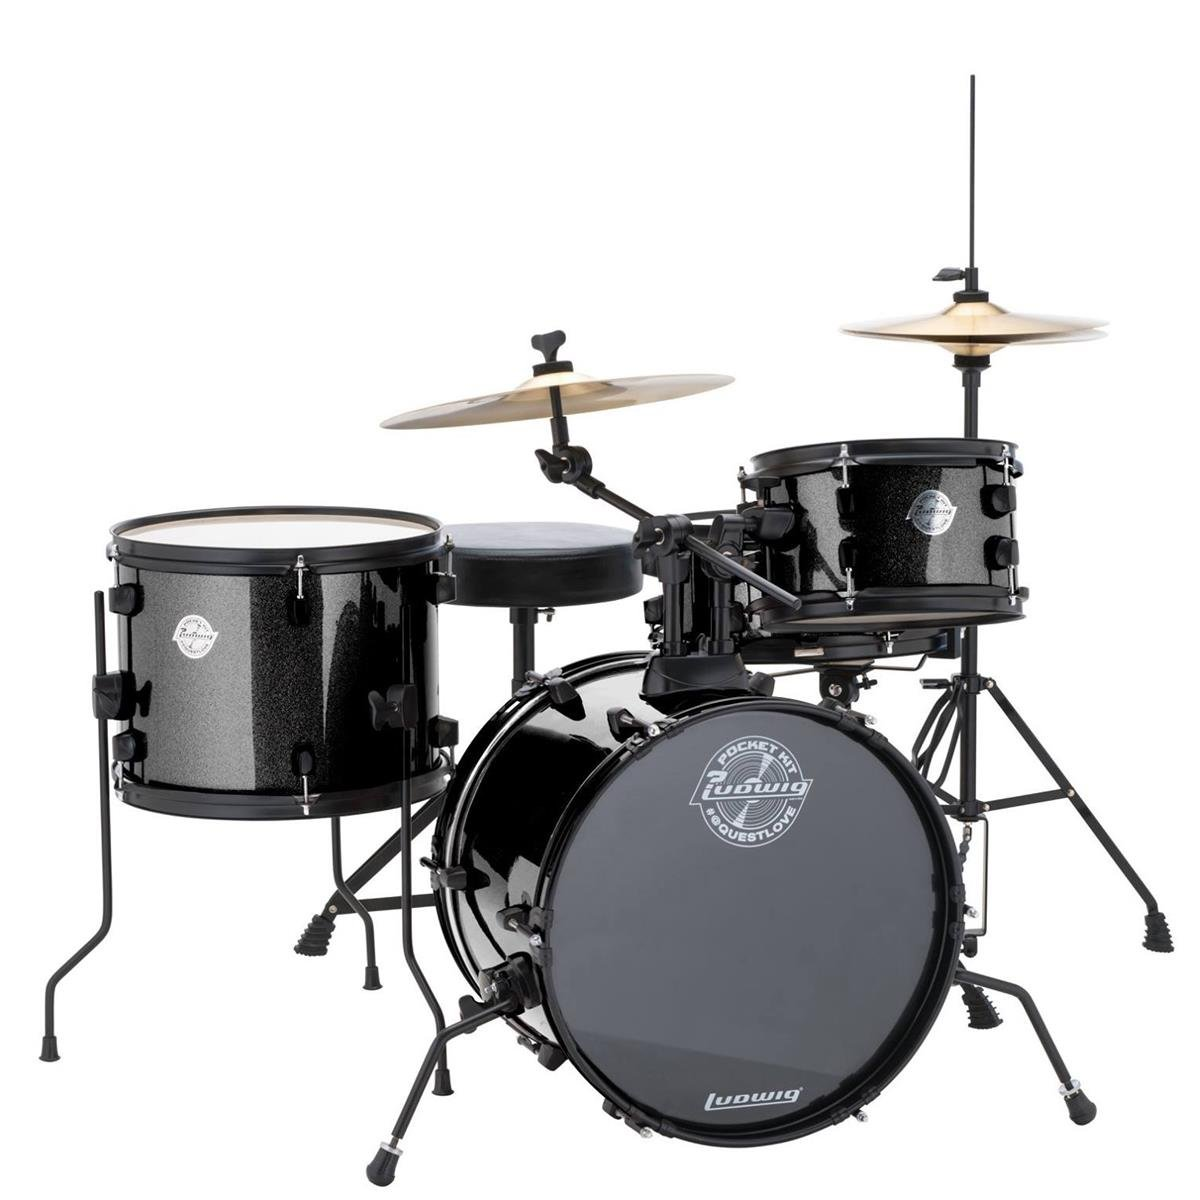 Ludwig LC178X016 Questlove Pocket Kit 4-Piece Drum Set-Black Sparkle Finish, inch ( by Ludwig